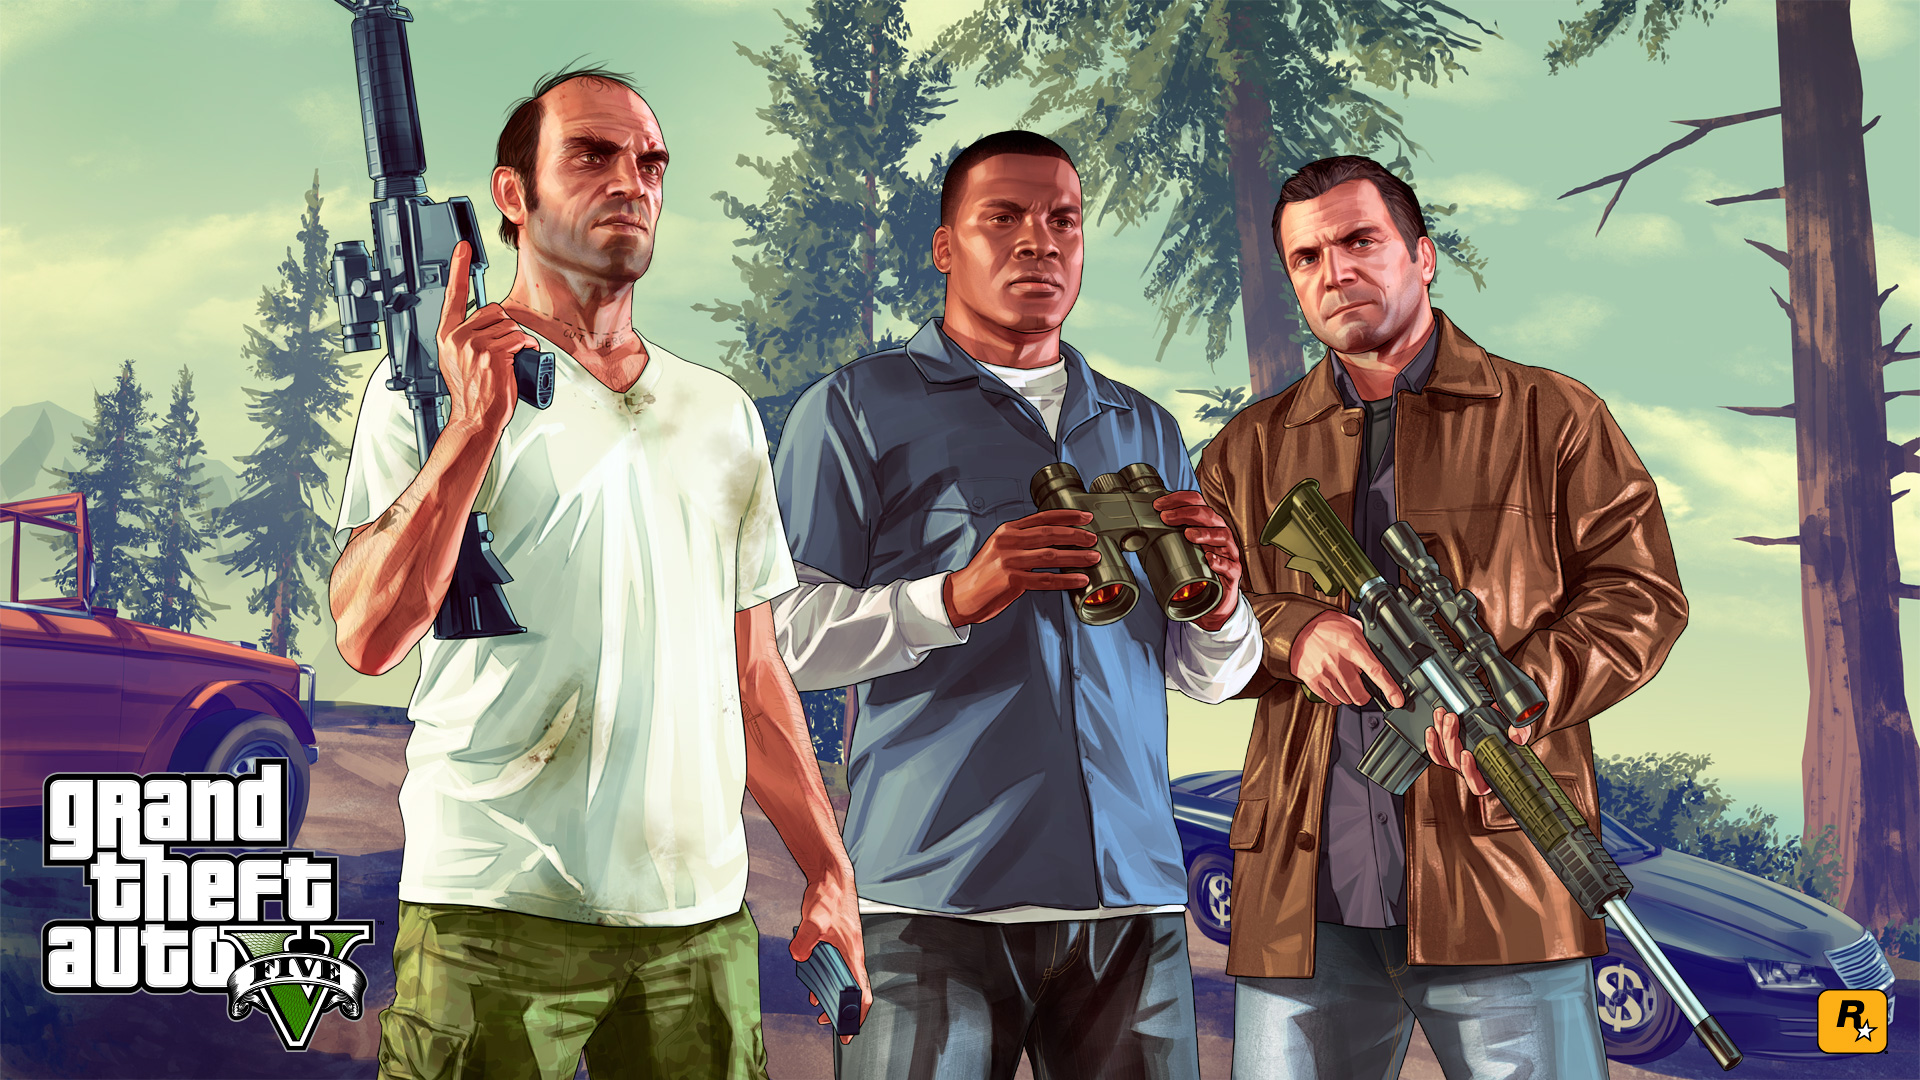 GTA 5 Has Sold More Than 90 Million Copies